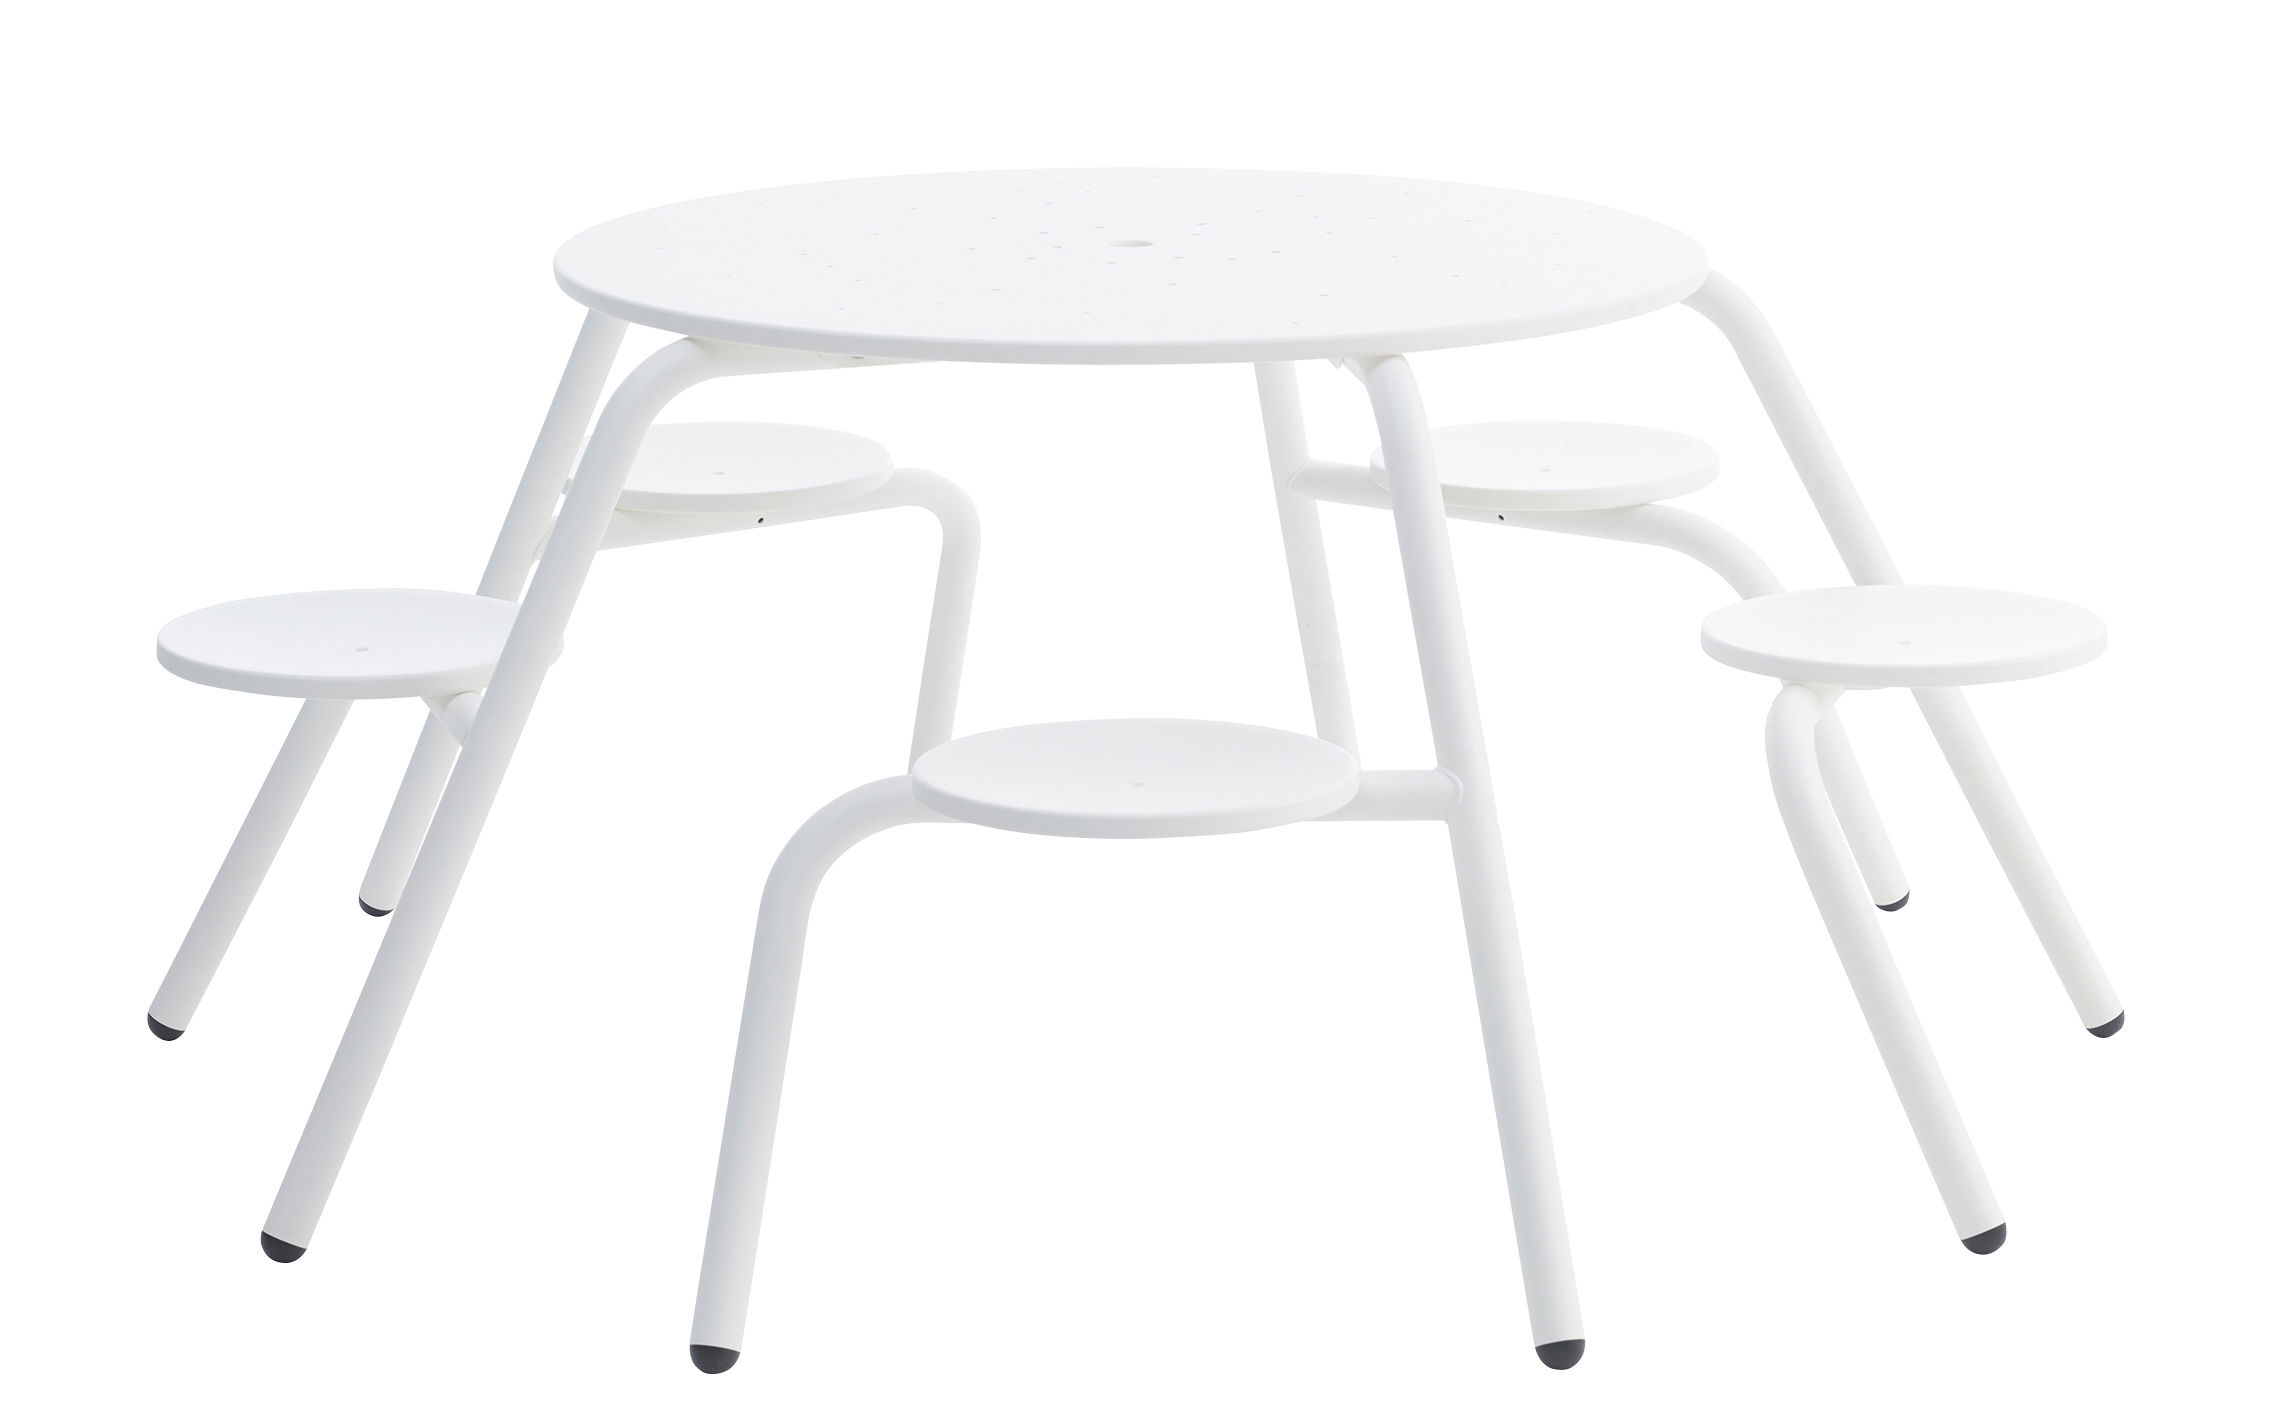 Outdoor - Garden Tables - Virus Table & seats set - 5 seats by Extremis - White - Zinc coated steel